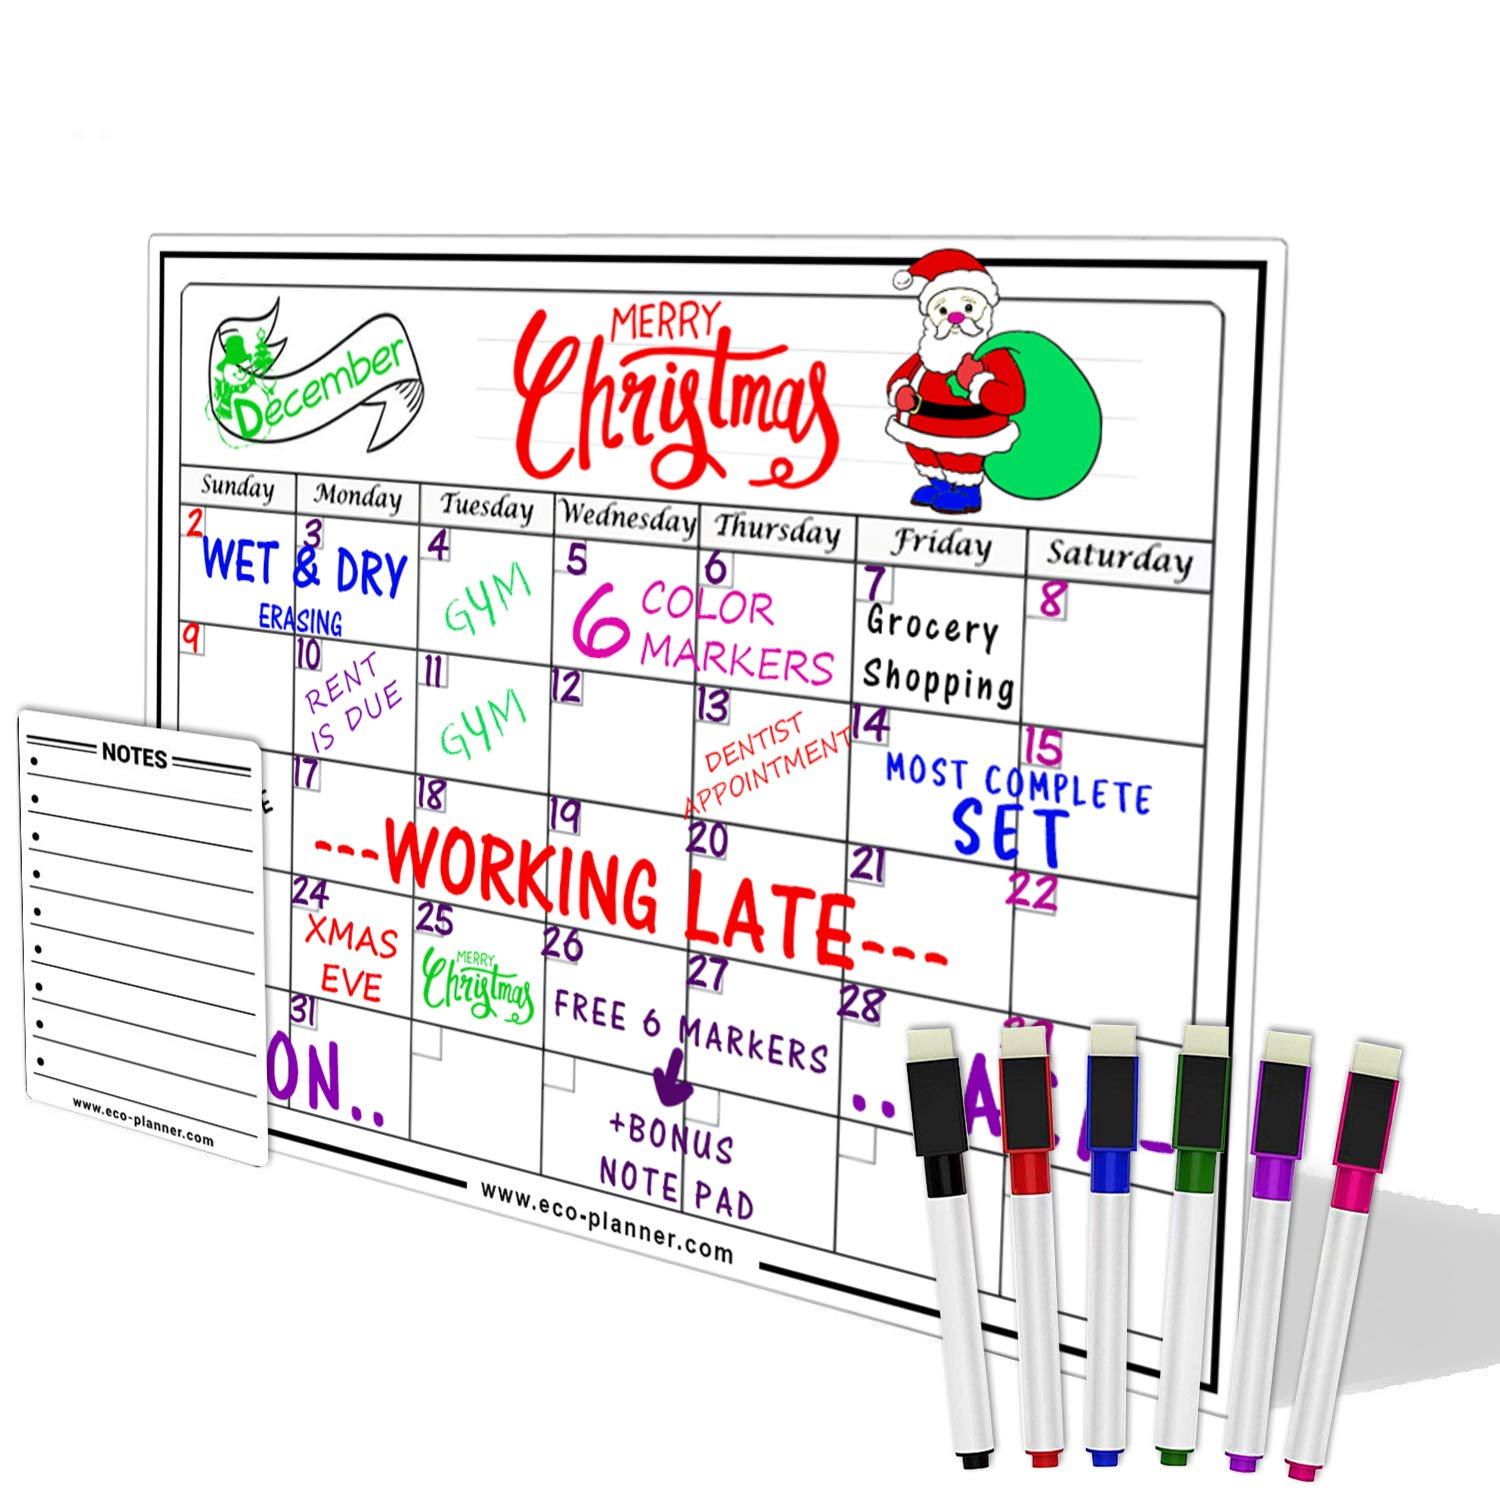 EcoPlanner Monthly Black Magnetic Refrigerator Dry Erase Board Calendar with BONUS Notepad and 4 Magnetic Fluorescent Markers with eraser Included 16X12 Magnetic Board Organizer Chalk Marker Board